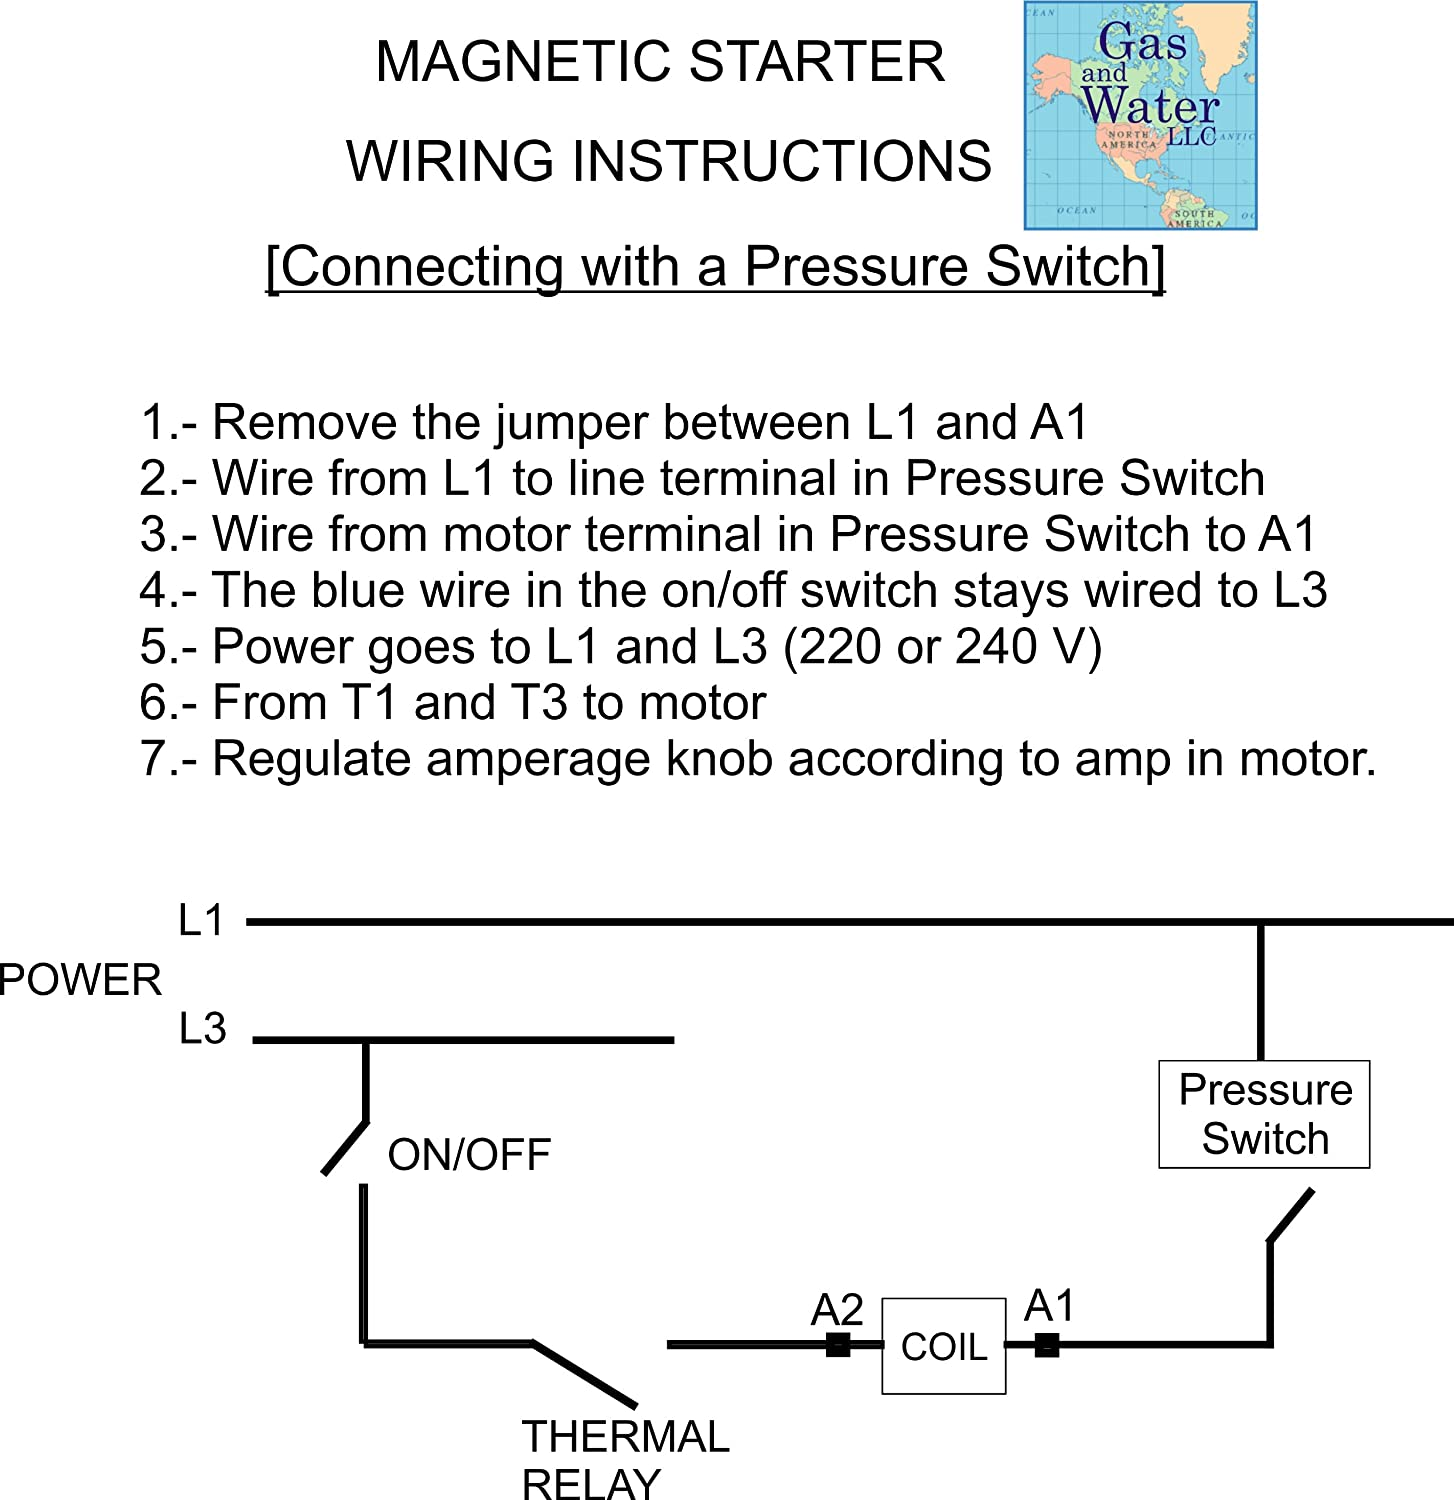 Mag Motor Starter Wiring Diagram from images-na.ssl-images-amazon.com